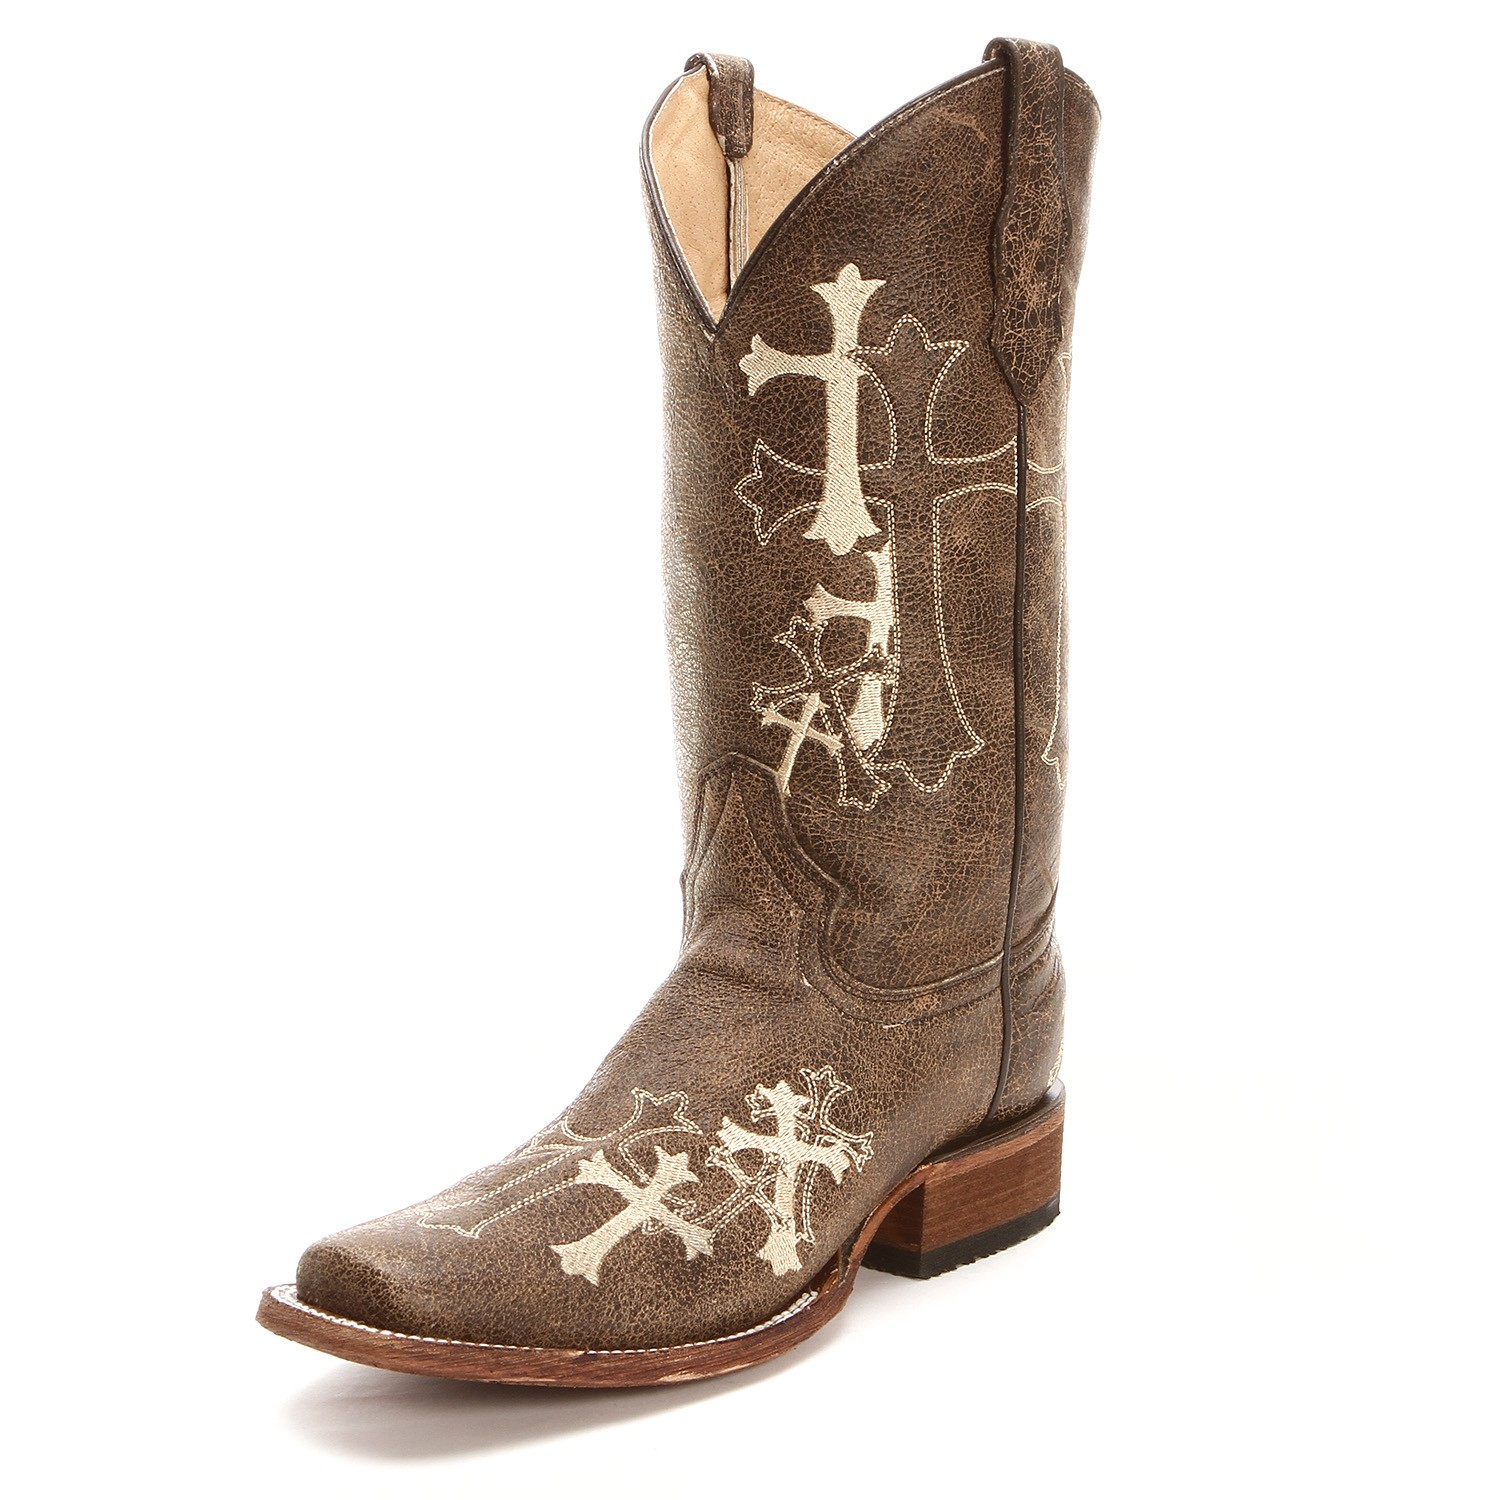 Cowgirl Boots With Crosses 8JJHsVBT